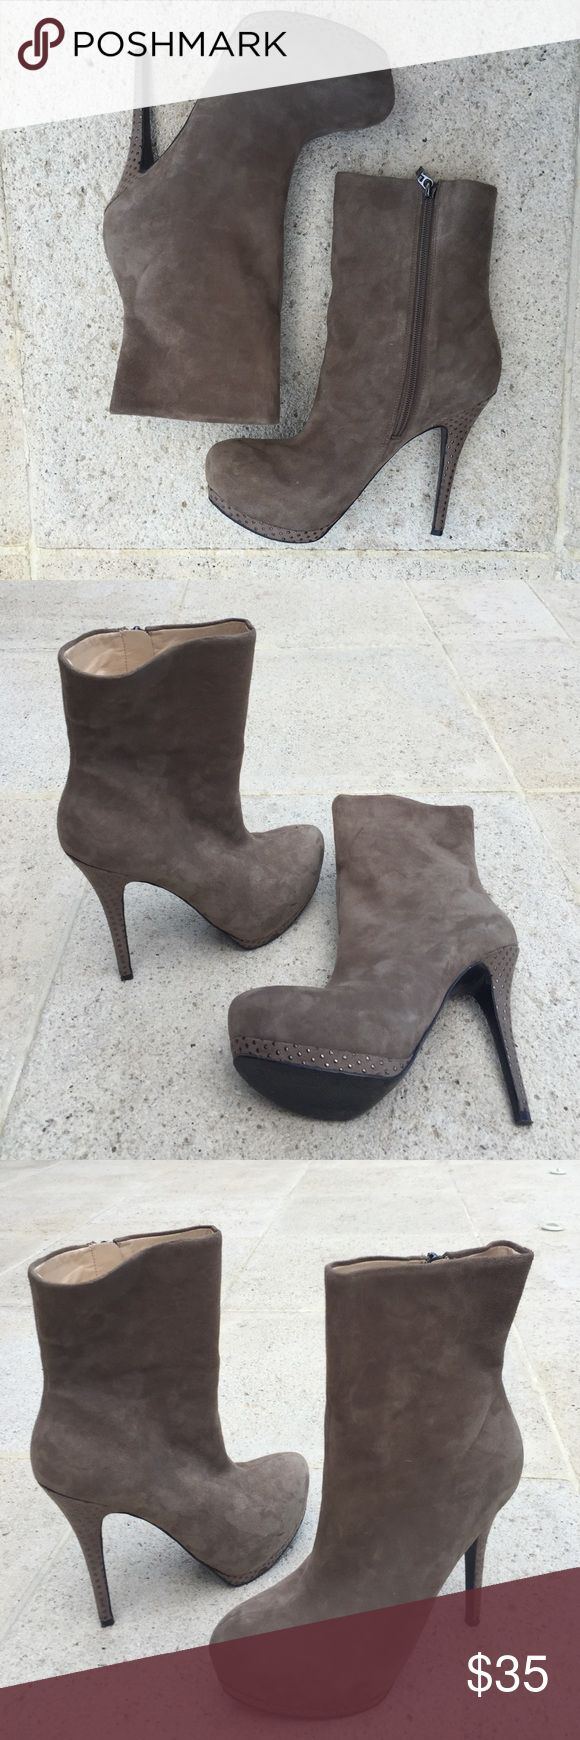 GUESS gray suede boot heels GUESS gray suede ankle boot heels in mint condition. Only walked around the house with these, never actually wore them anywhere! They're gorgeous but I live in Florida and never wear them :( GUESS Shoes Heeled Boots